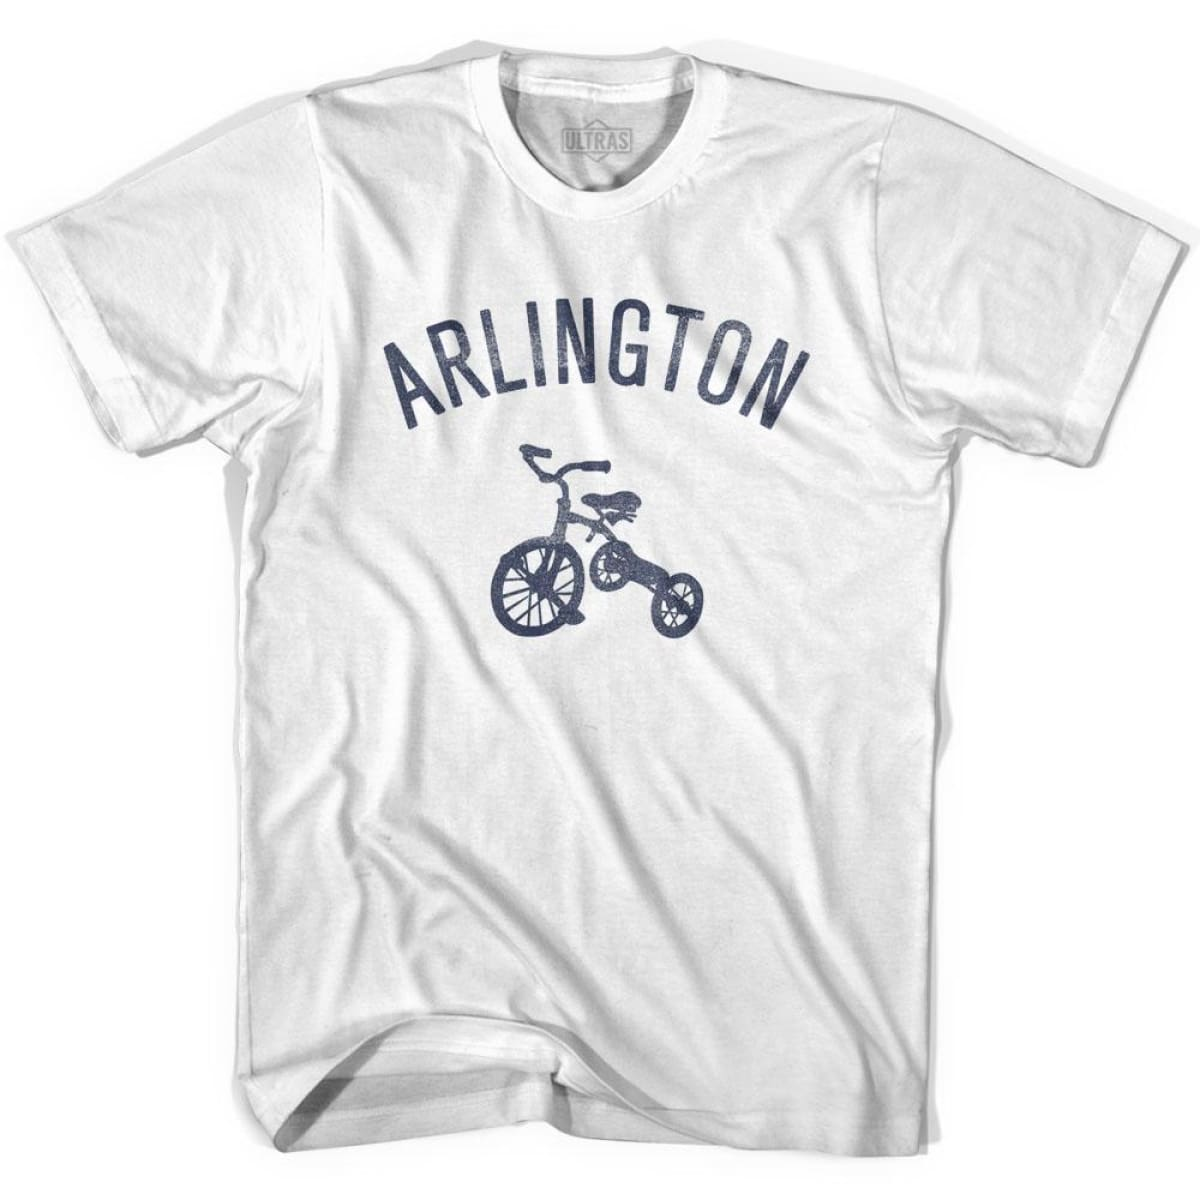 Arlington City Tricycle Womens Cotton T-shirt - Tricycle City